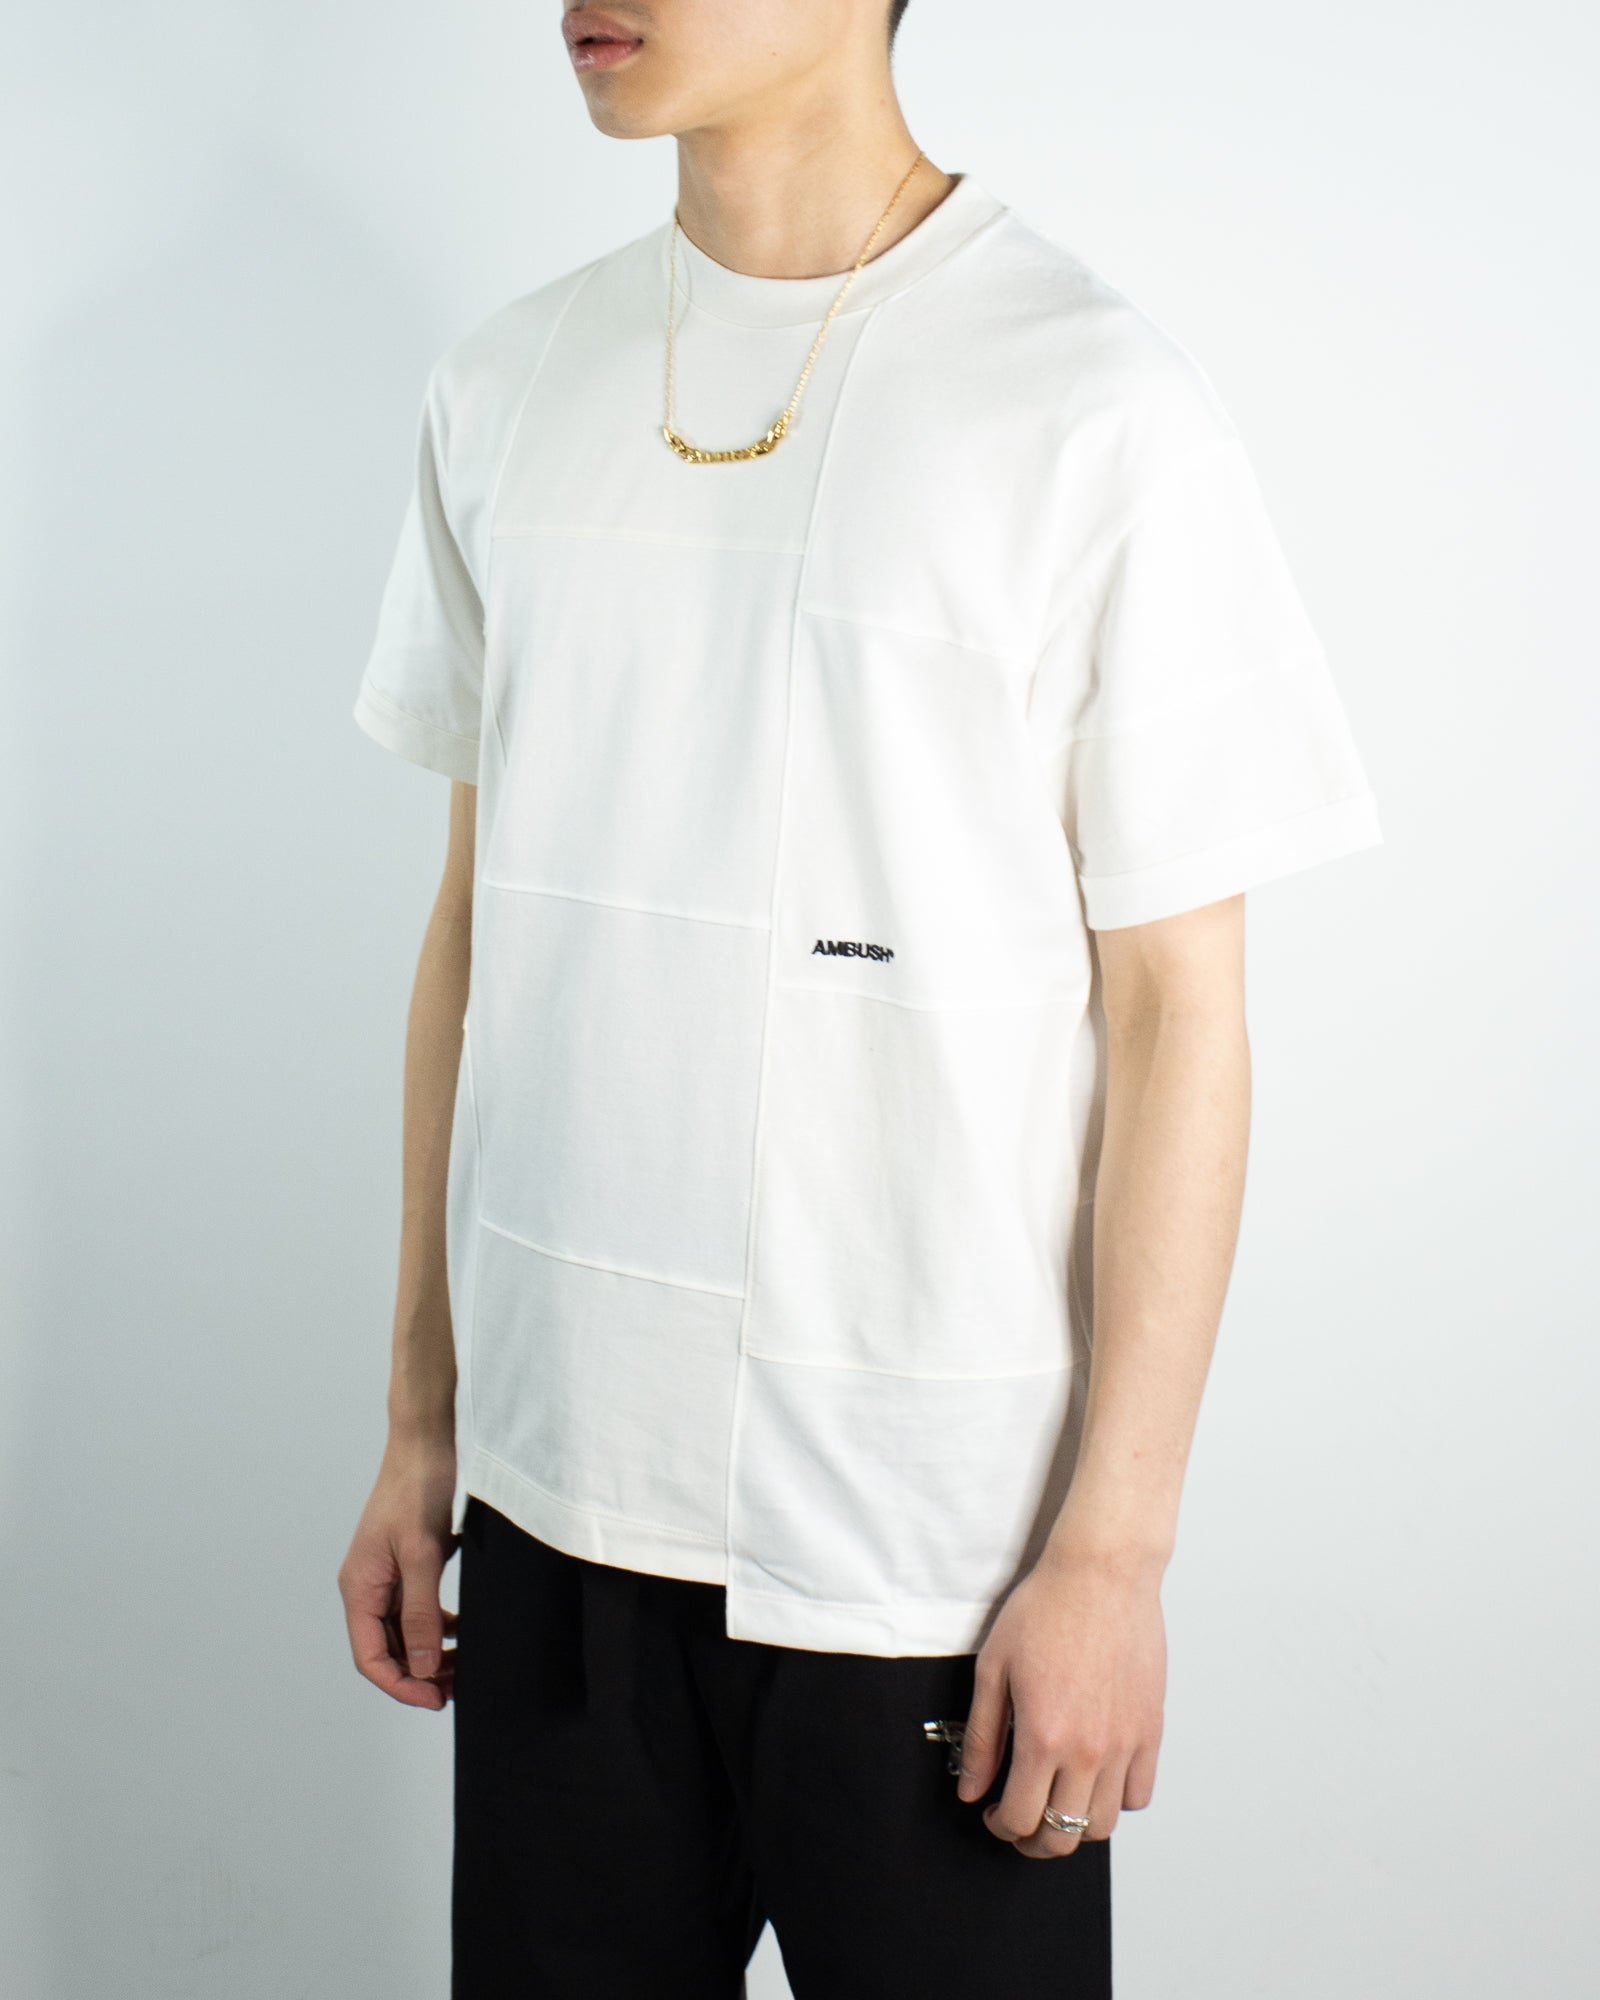 AMBUSH Block Panel T-Shirt